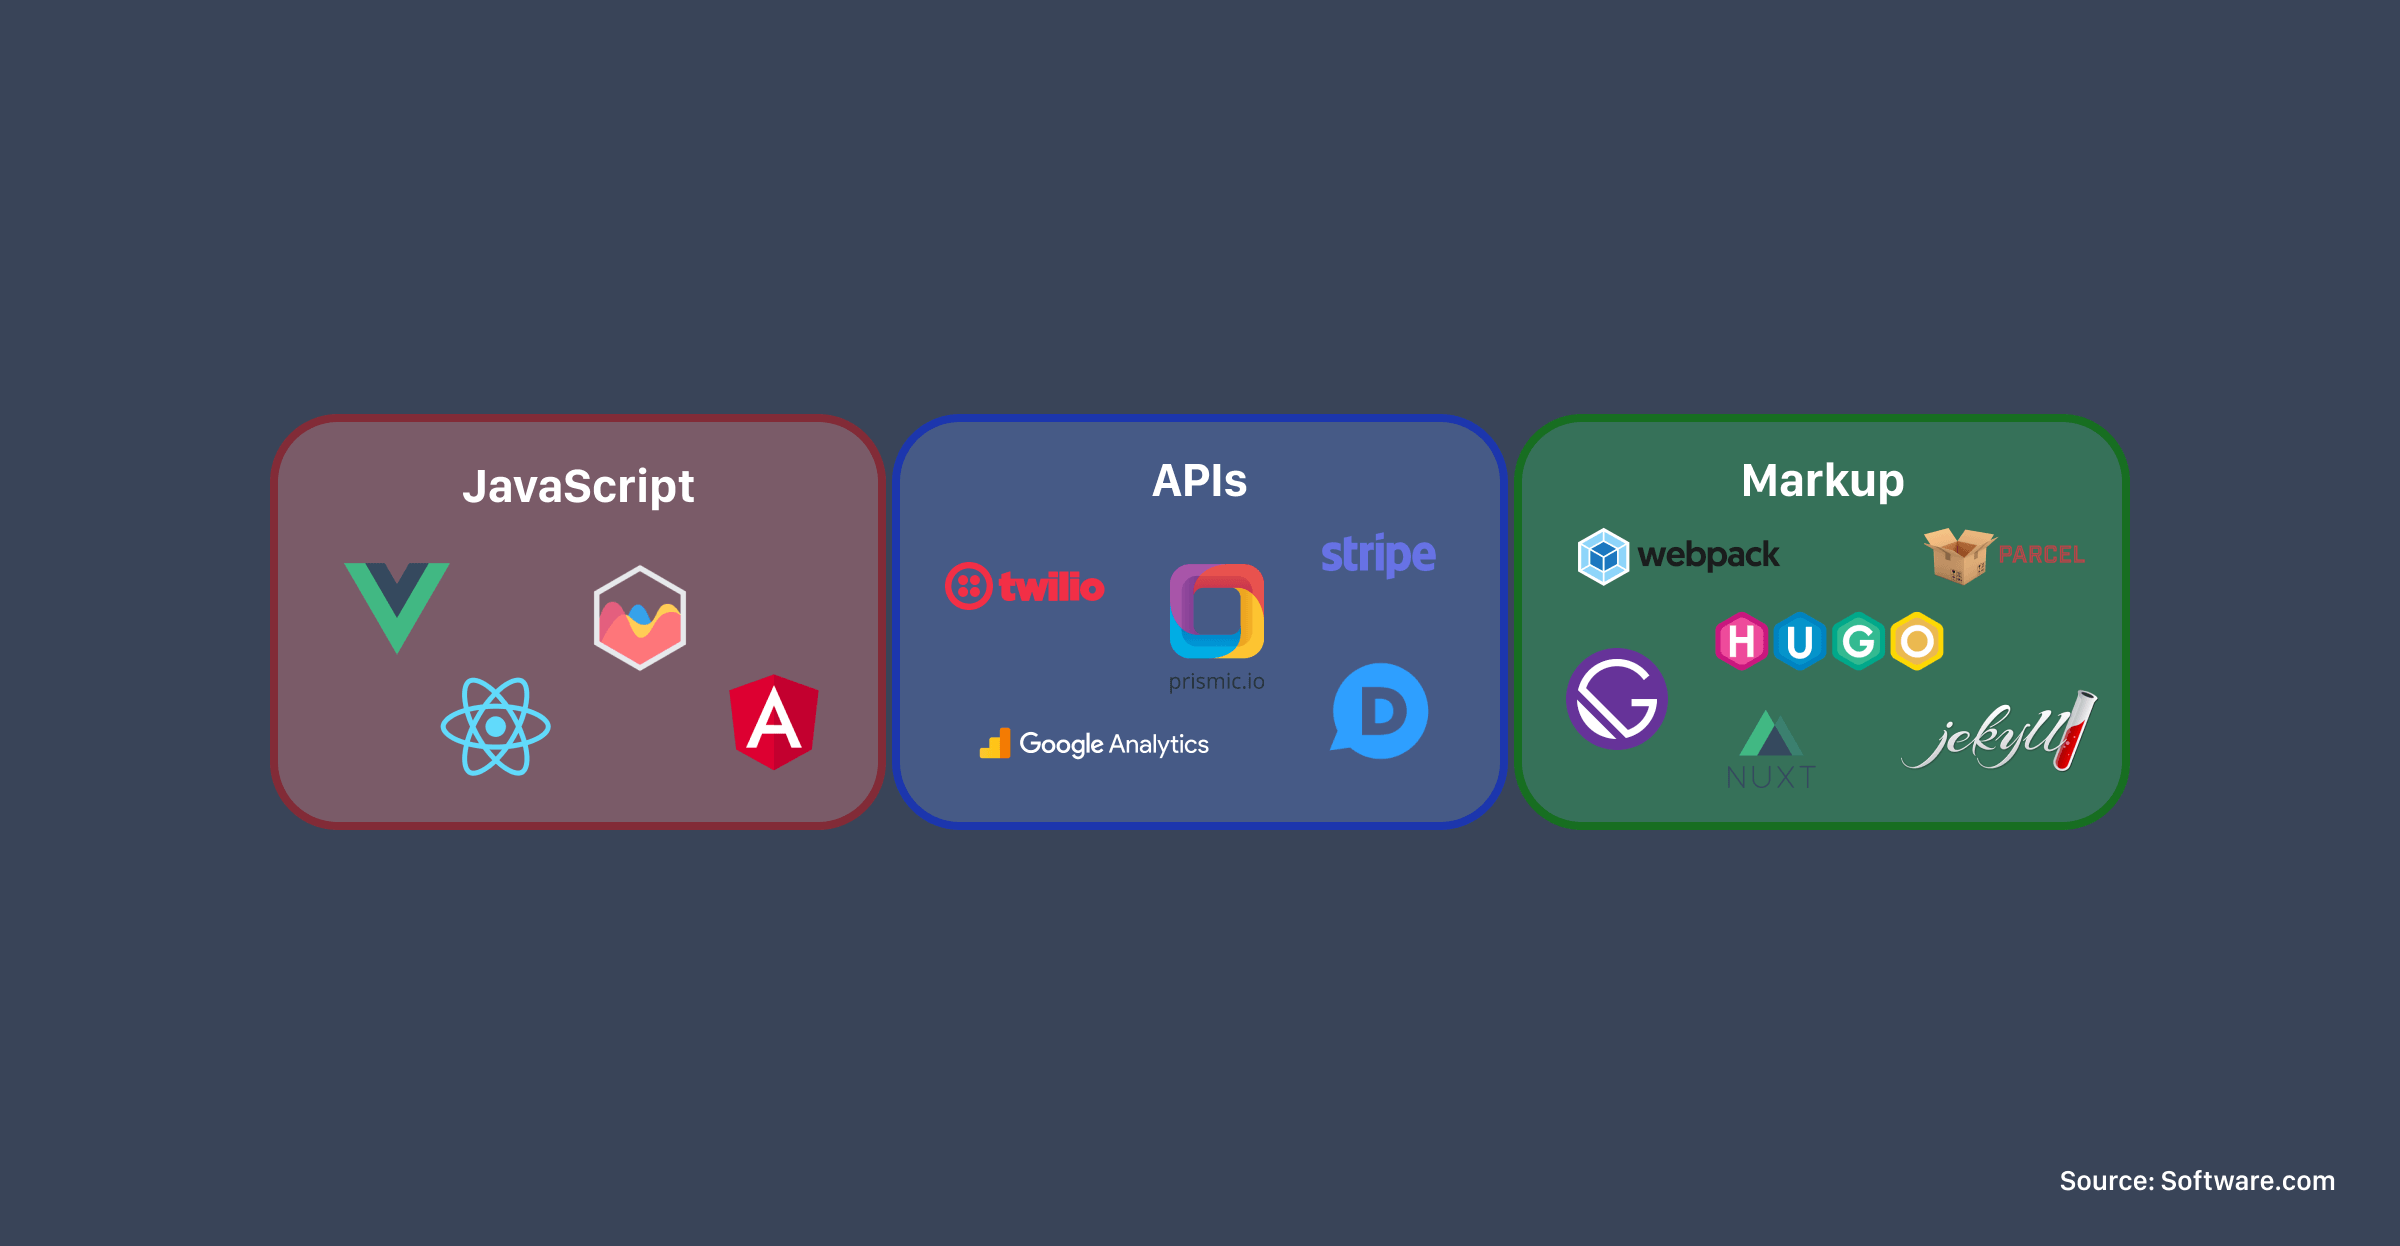 JavaScript, APIs, and Markup make up the JAMstack, including tools like Vue, React, Angular, Gatsby, Webpack, Jekyll, Hugo, Nuxt, and more.